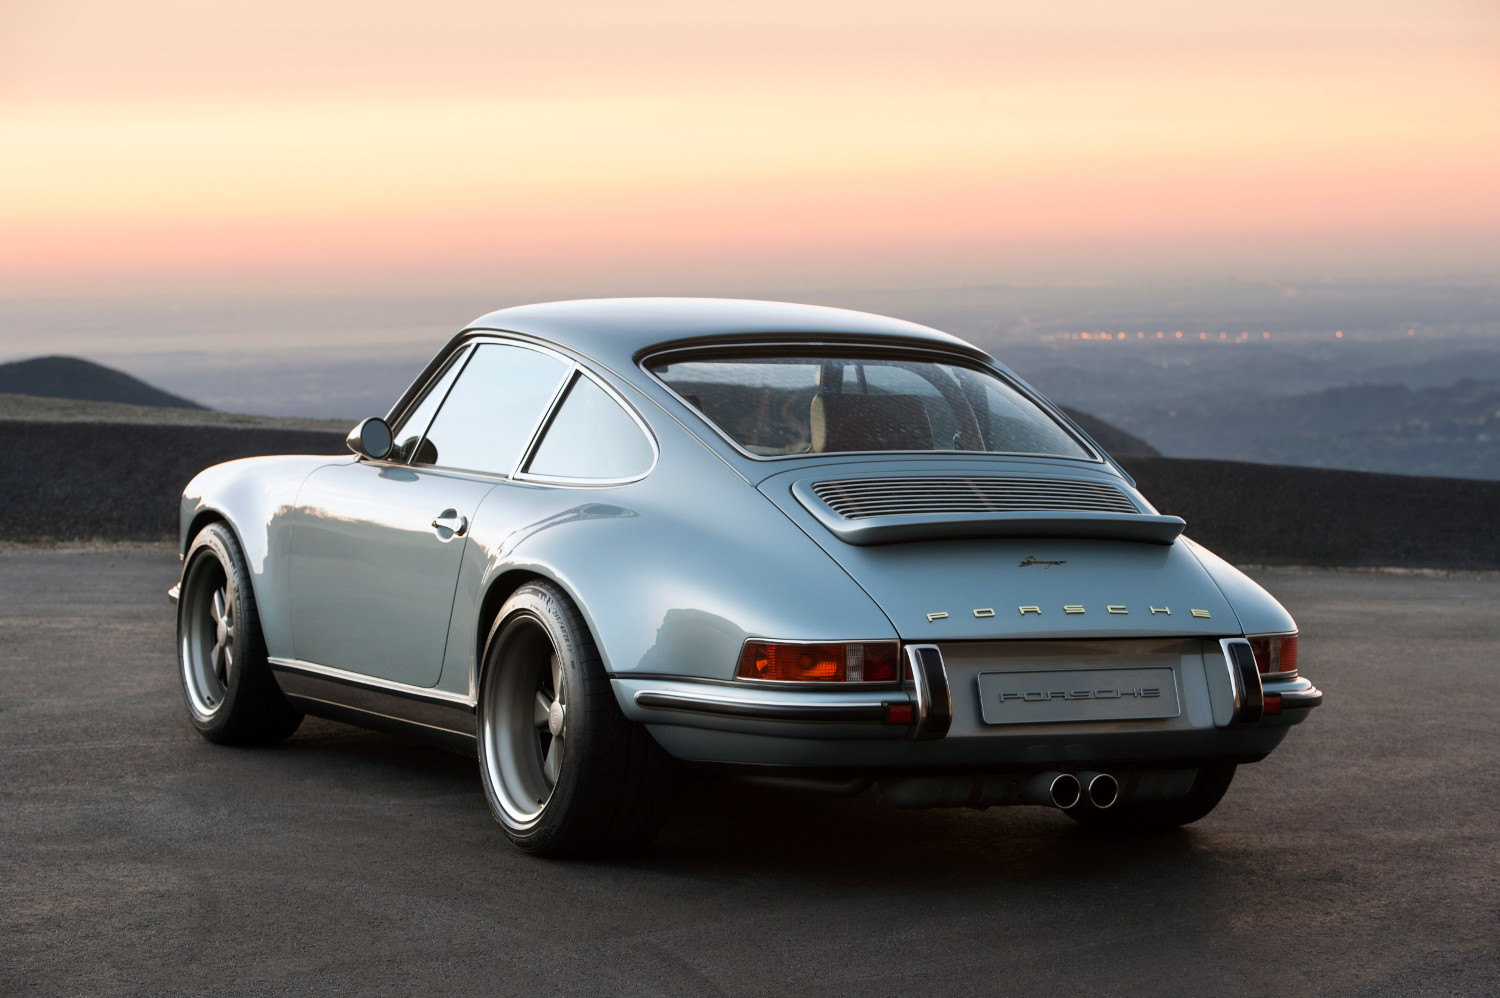 Virginia A Porsche 911 By Singer Motrolix